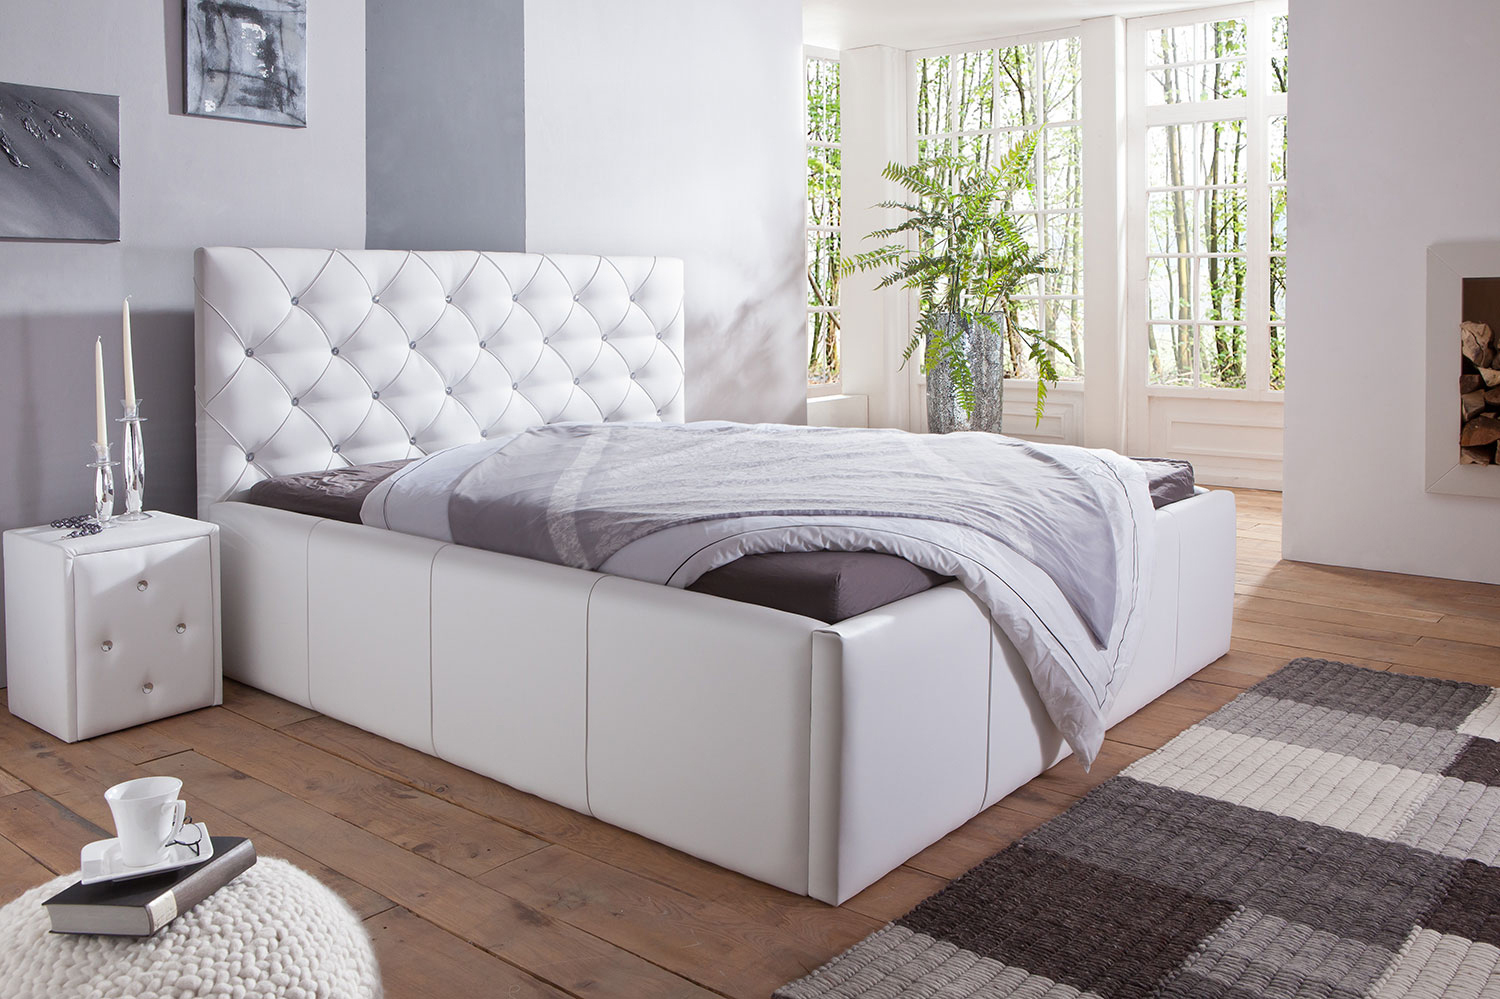 di lara polsterbett kairo mit bettkasten 140x200 160x200 180x200 200x200 ebay. Black Bedroom Furniture Sets. Home Design Ideas